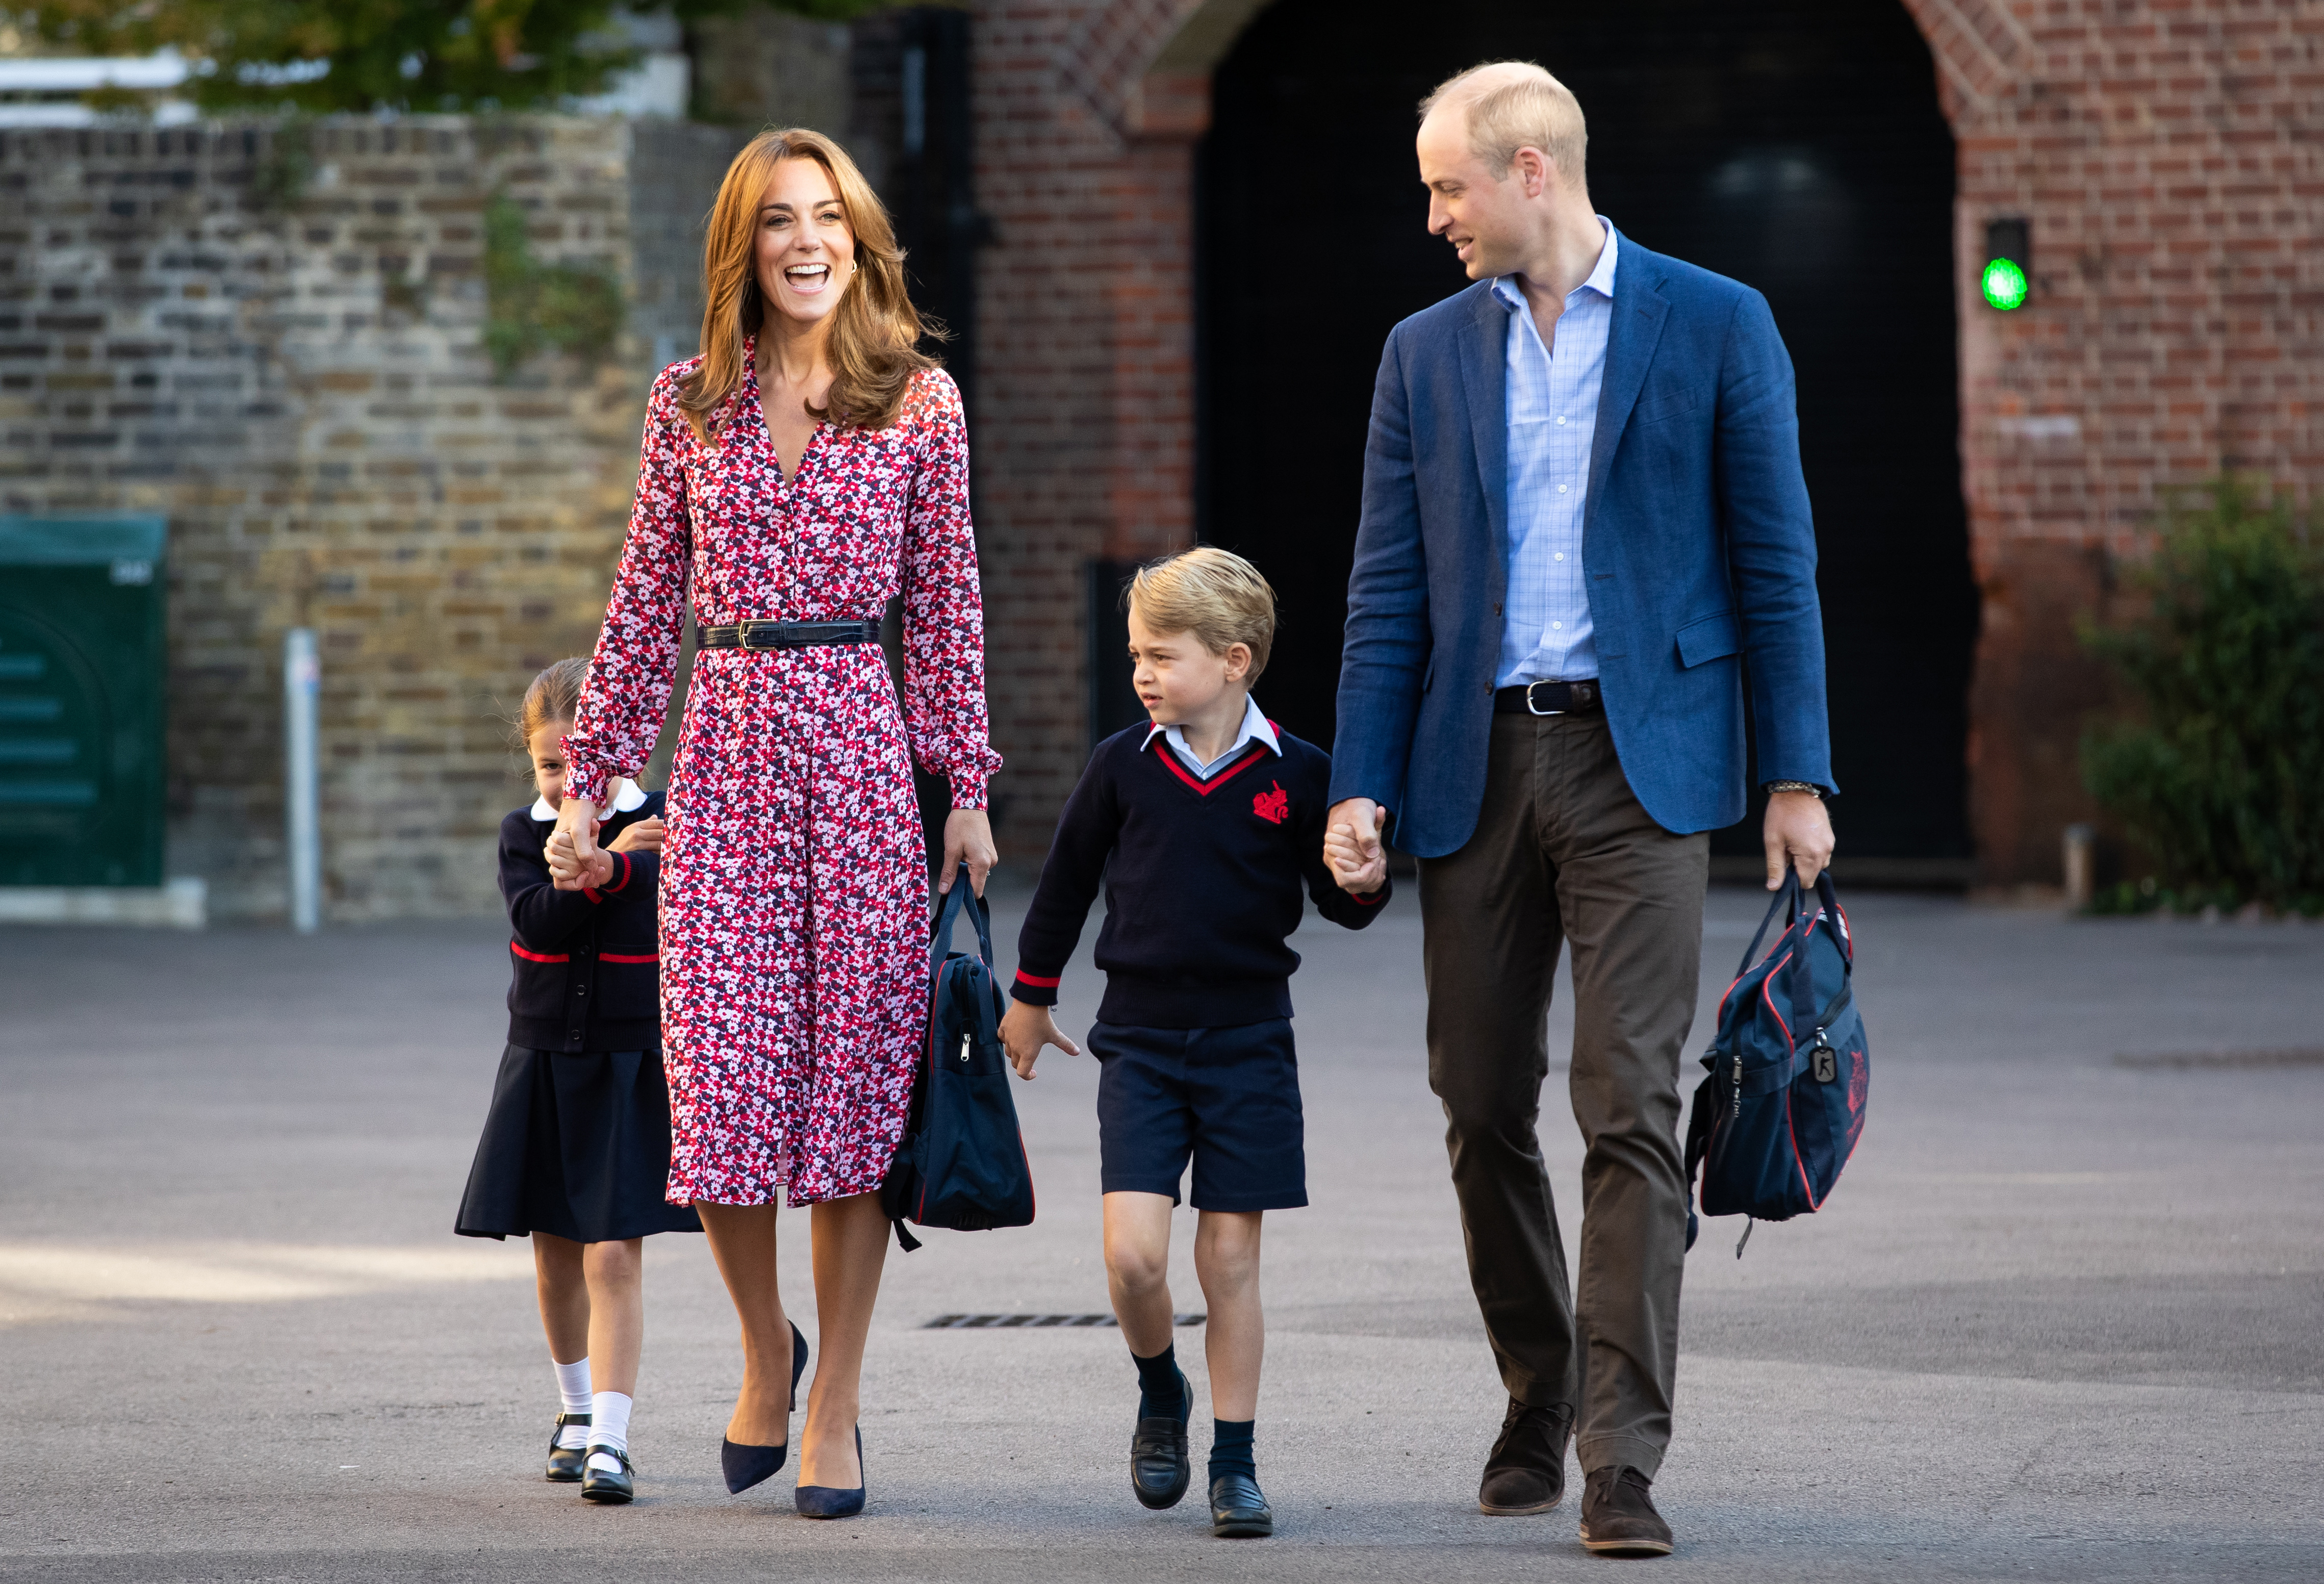 Princess Charlotte and Prince George attend Thomas's School in Battersea.